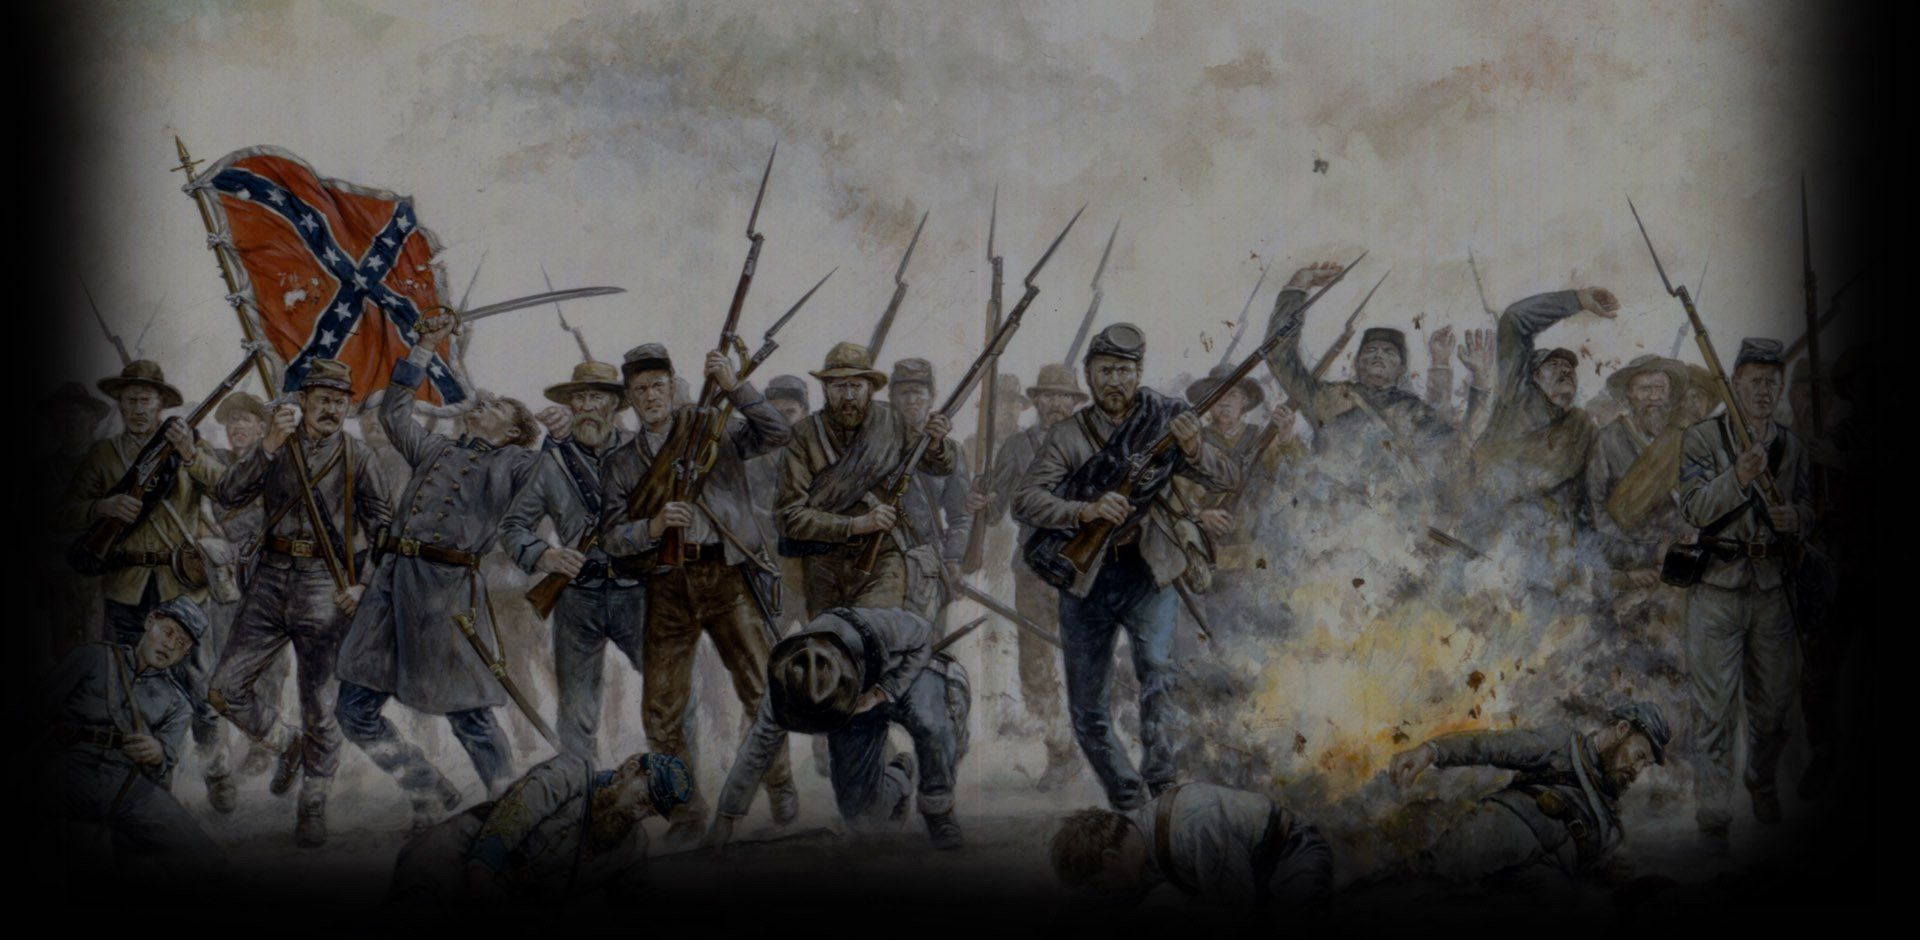 1920x940 Battleplan: American Civil War Wallpaper and Background Image ...